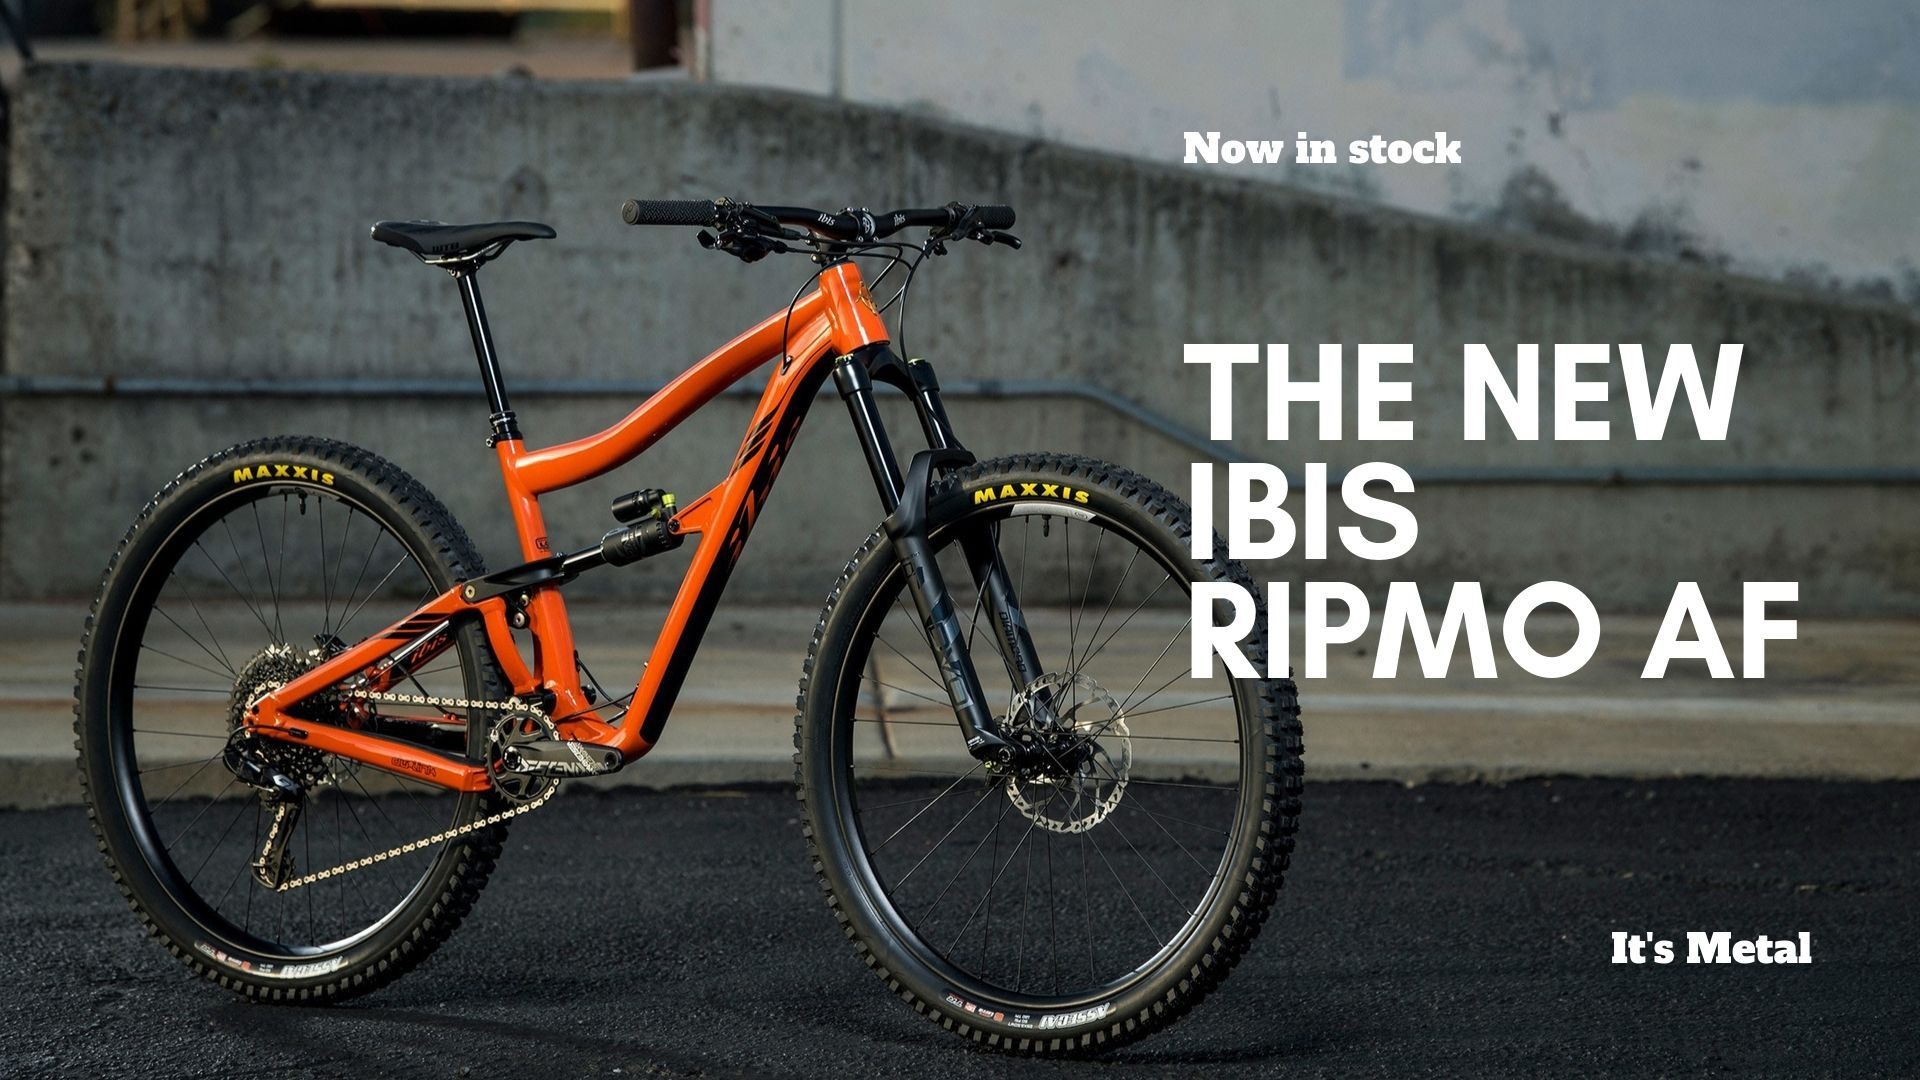 The New Ibis Ripmo AF